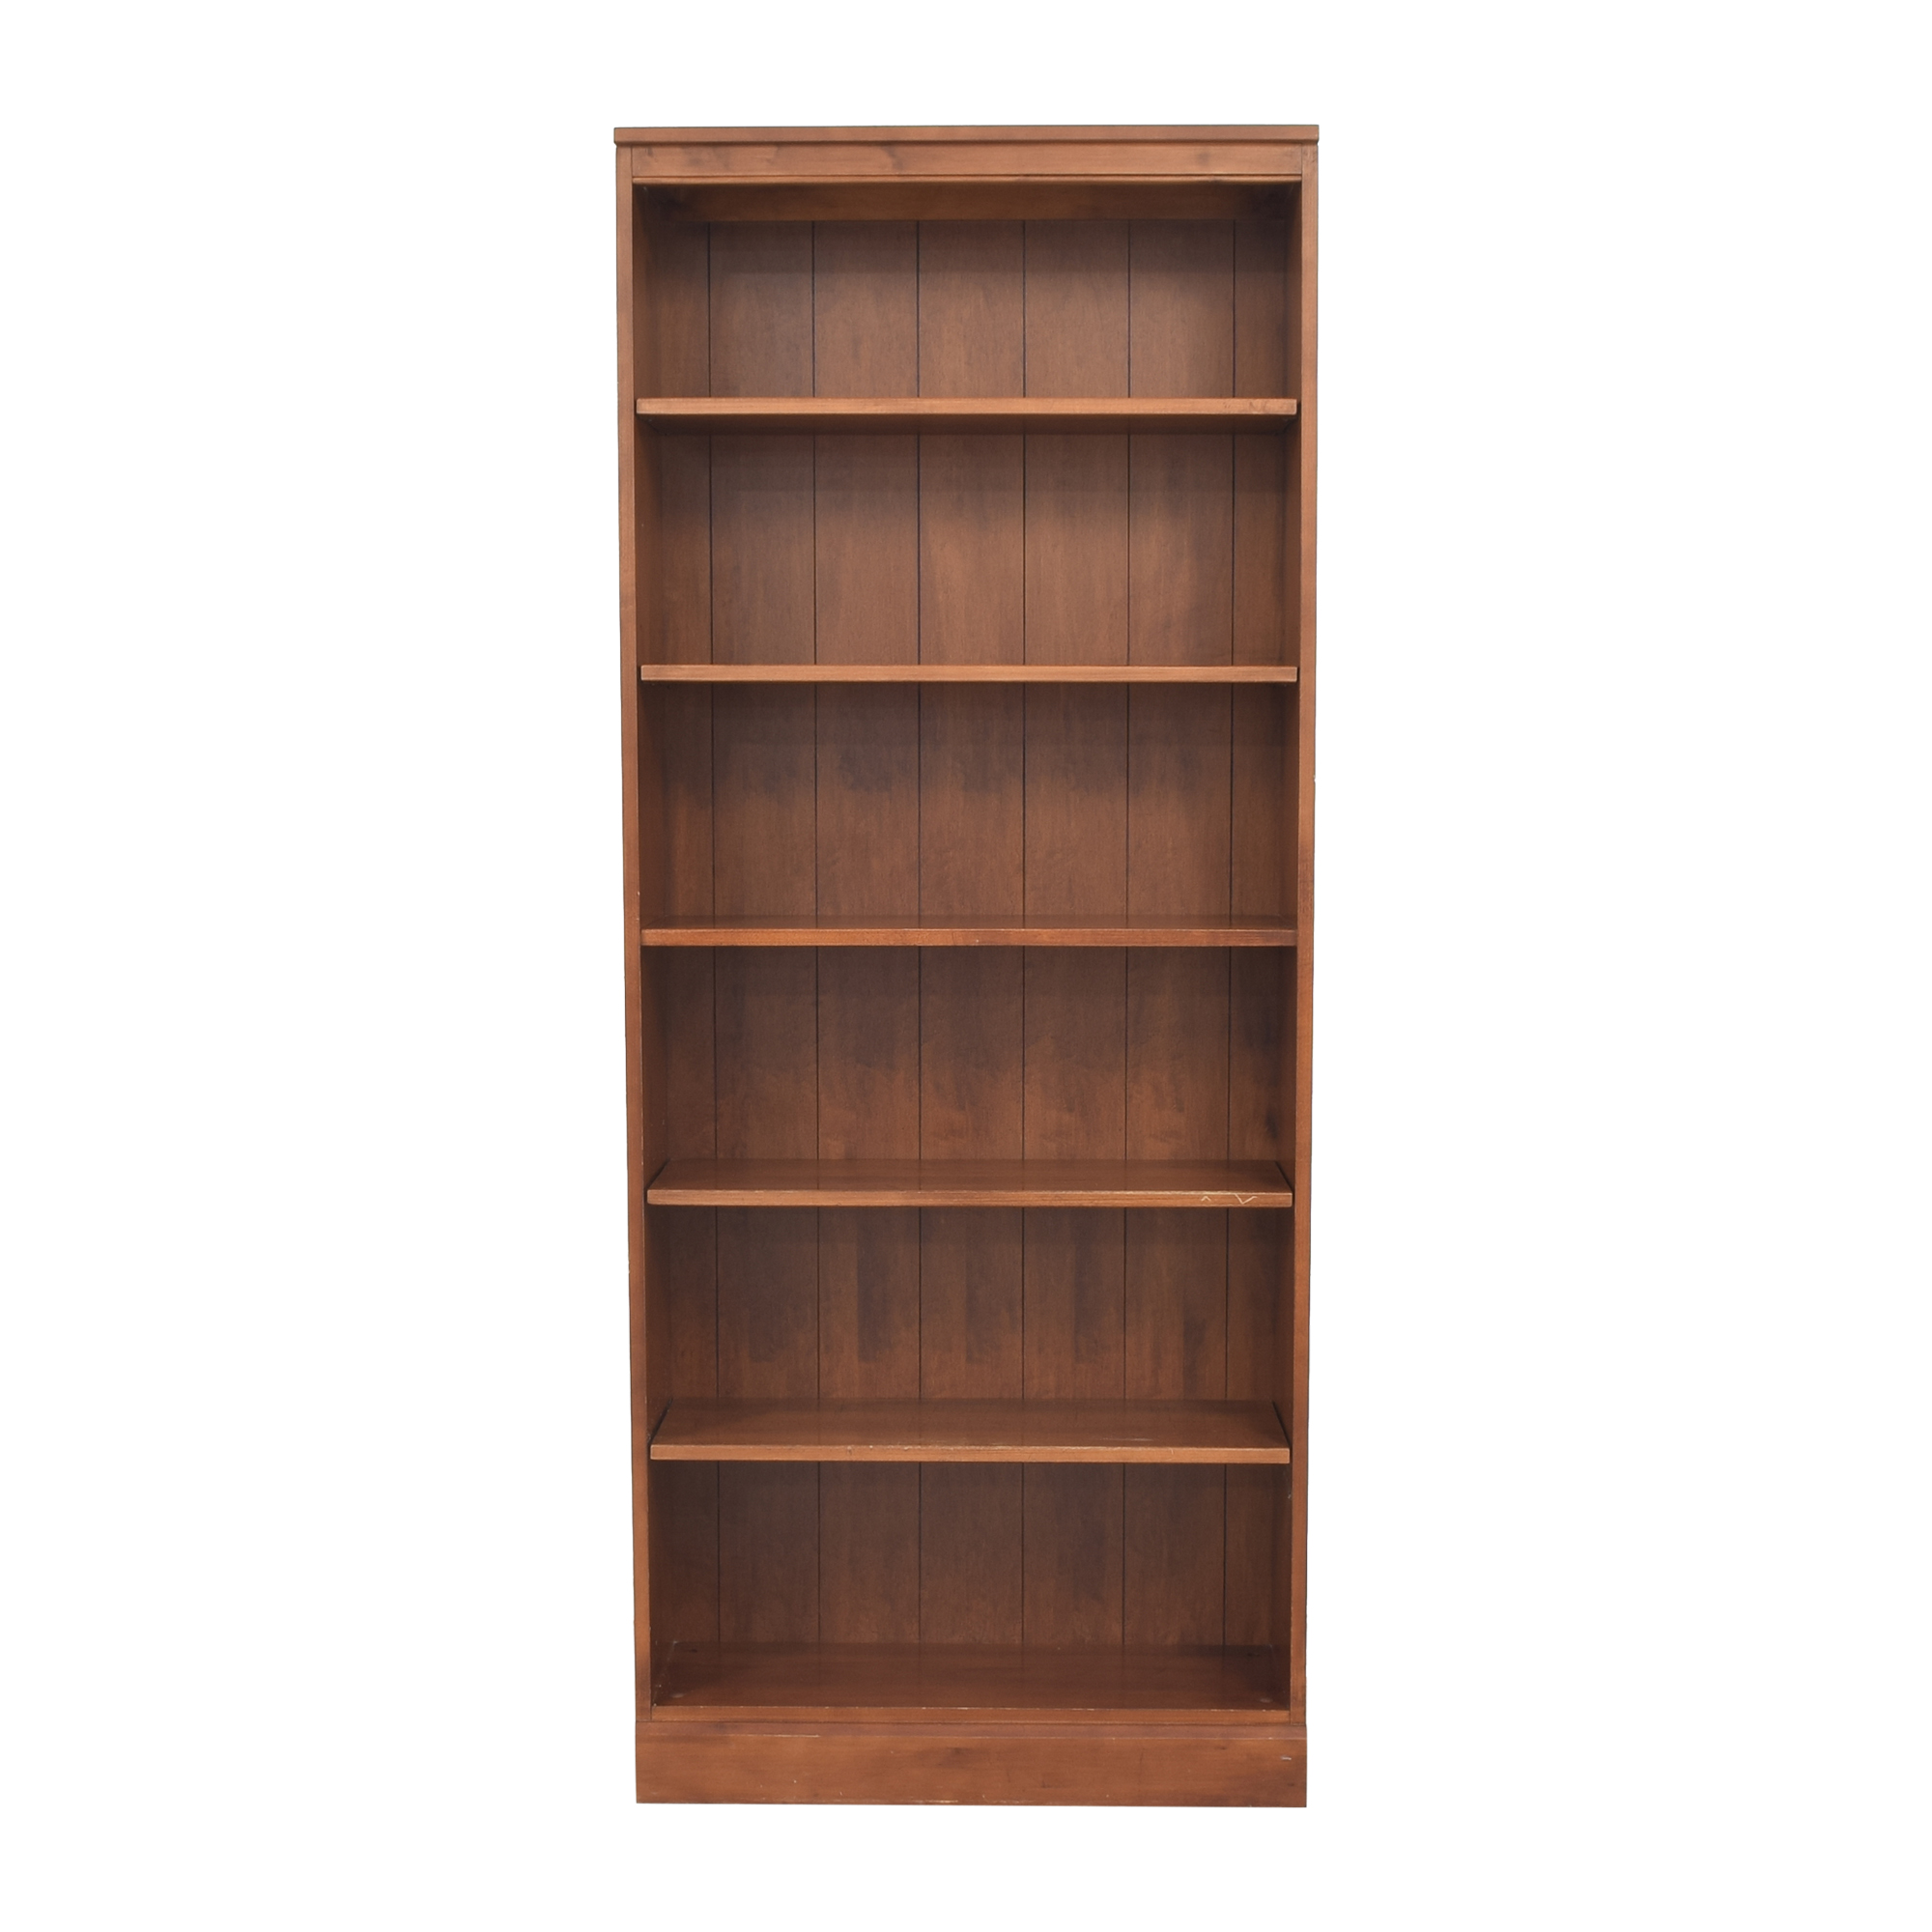 Ethan Allen Ethan Allen Crawford Tall Bookcase Bookcases & Shelving